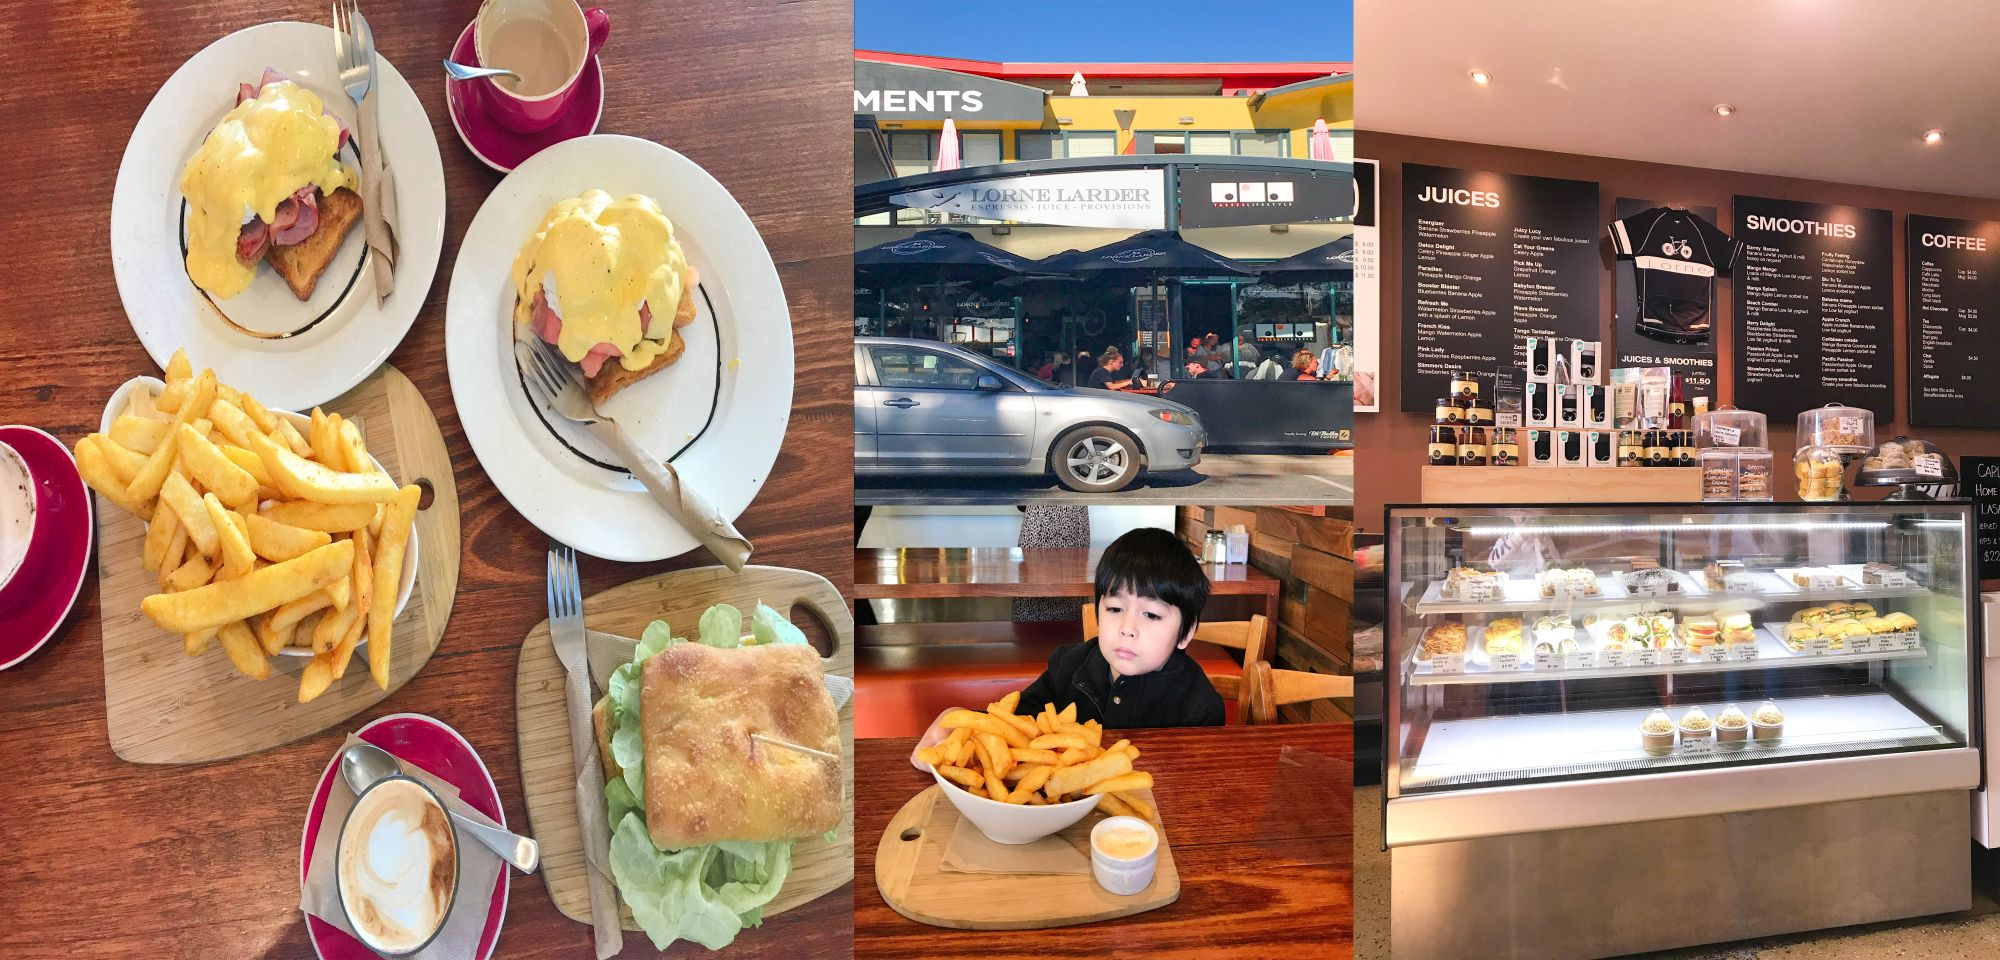 Where to eat at Lorne,Victoria